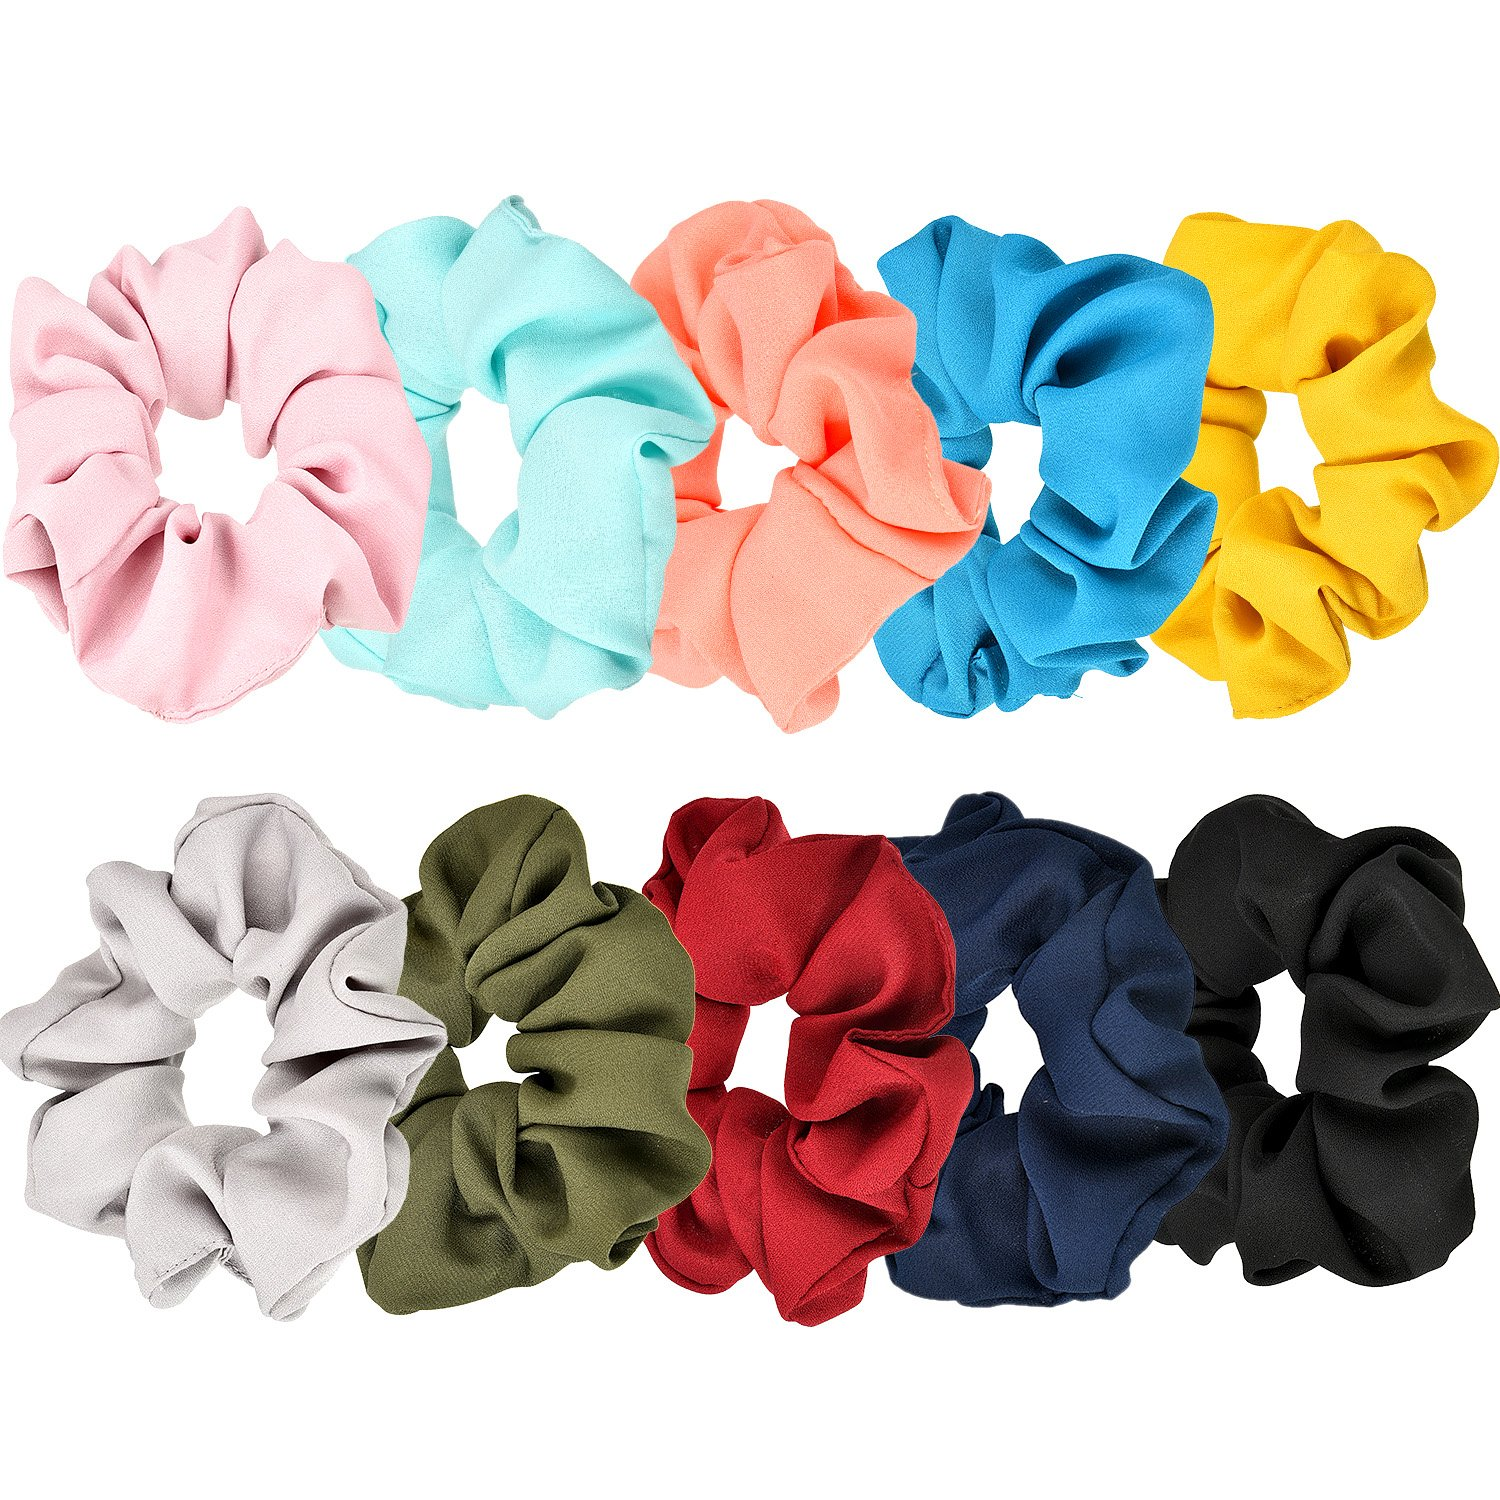 Jovitec 10 Pieces Hair Scrunchies Hair Bobbles Scrunchies Chiffon Flower Hair Bow Elastic Ponytail Holder for Women and Girls, 10 Colors